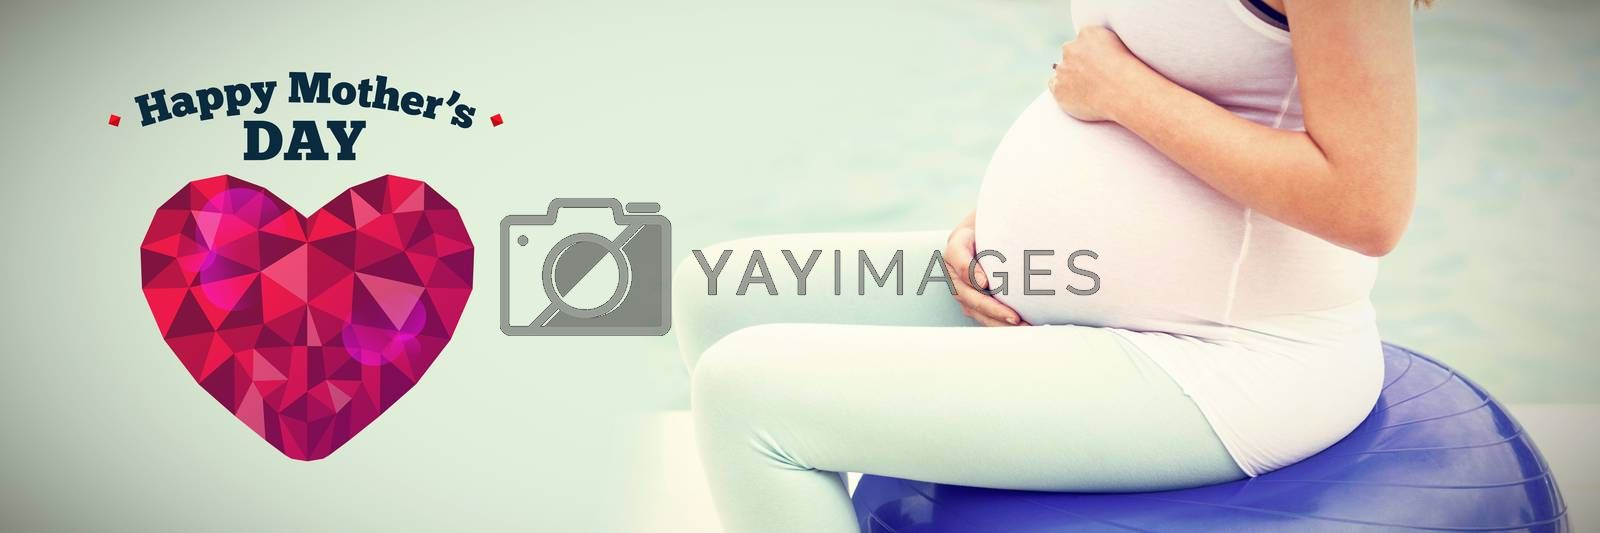 happy mothers day against side view of pregnant woman sitting on exercise ball